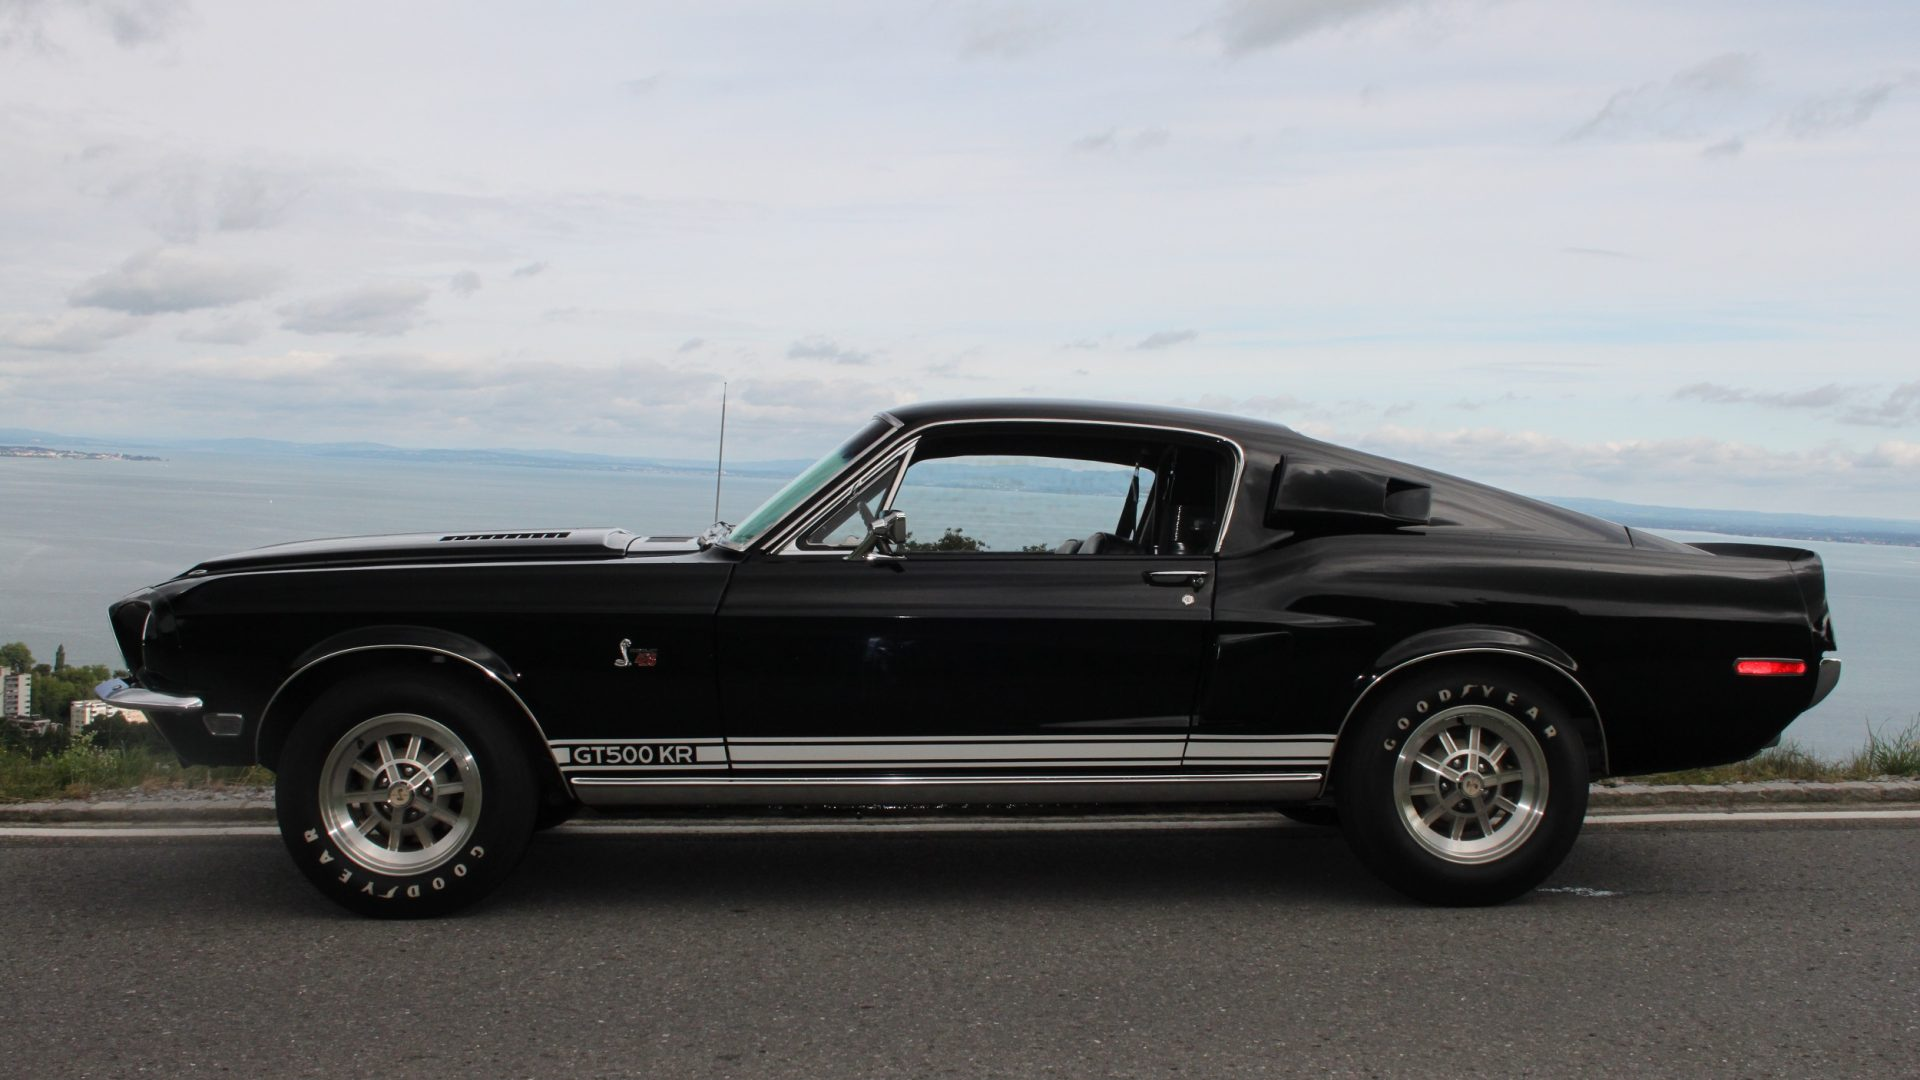 1968 Shelby GT 500 KR Ford Mustang